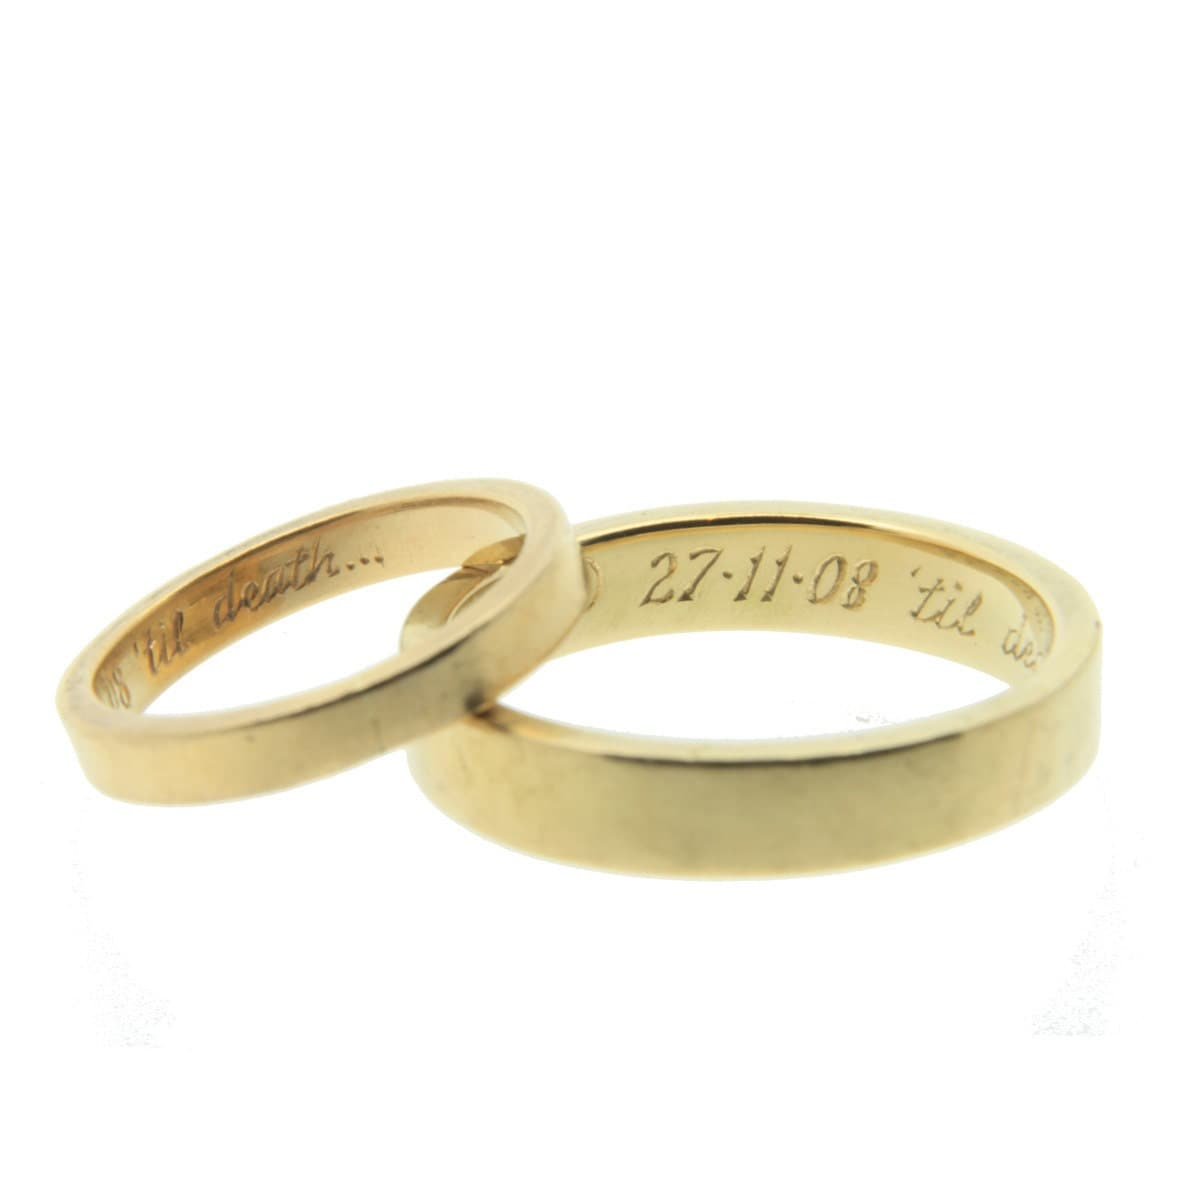 wedding ring engraving 28 images free - Wedding Ring Engraving Ideas